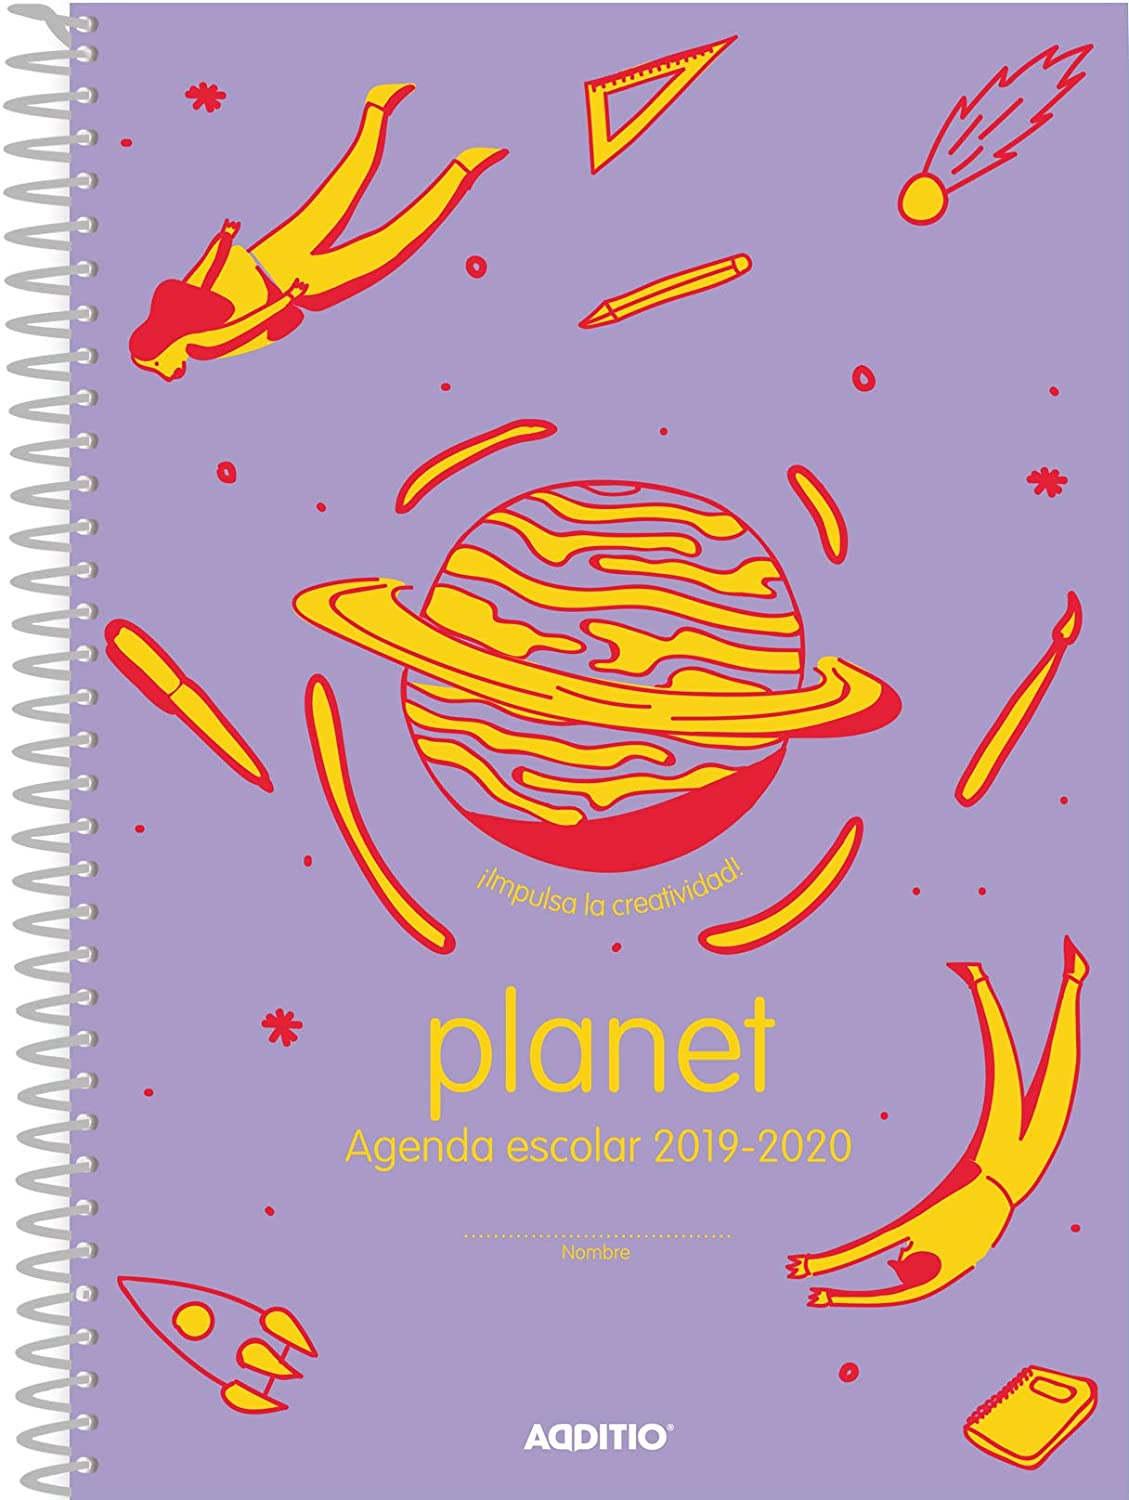 Agenda Planet 2019-20 Additio para Educación Primaria